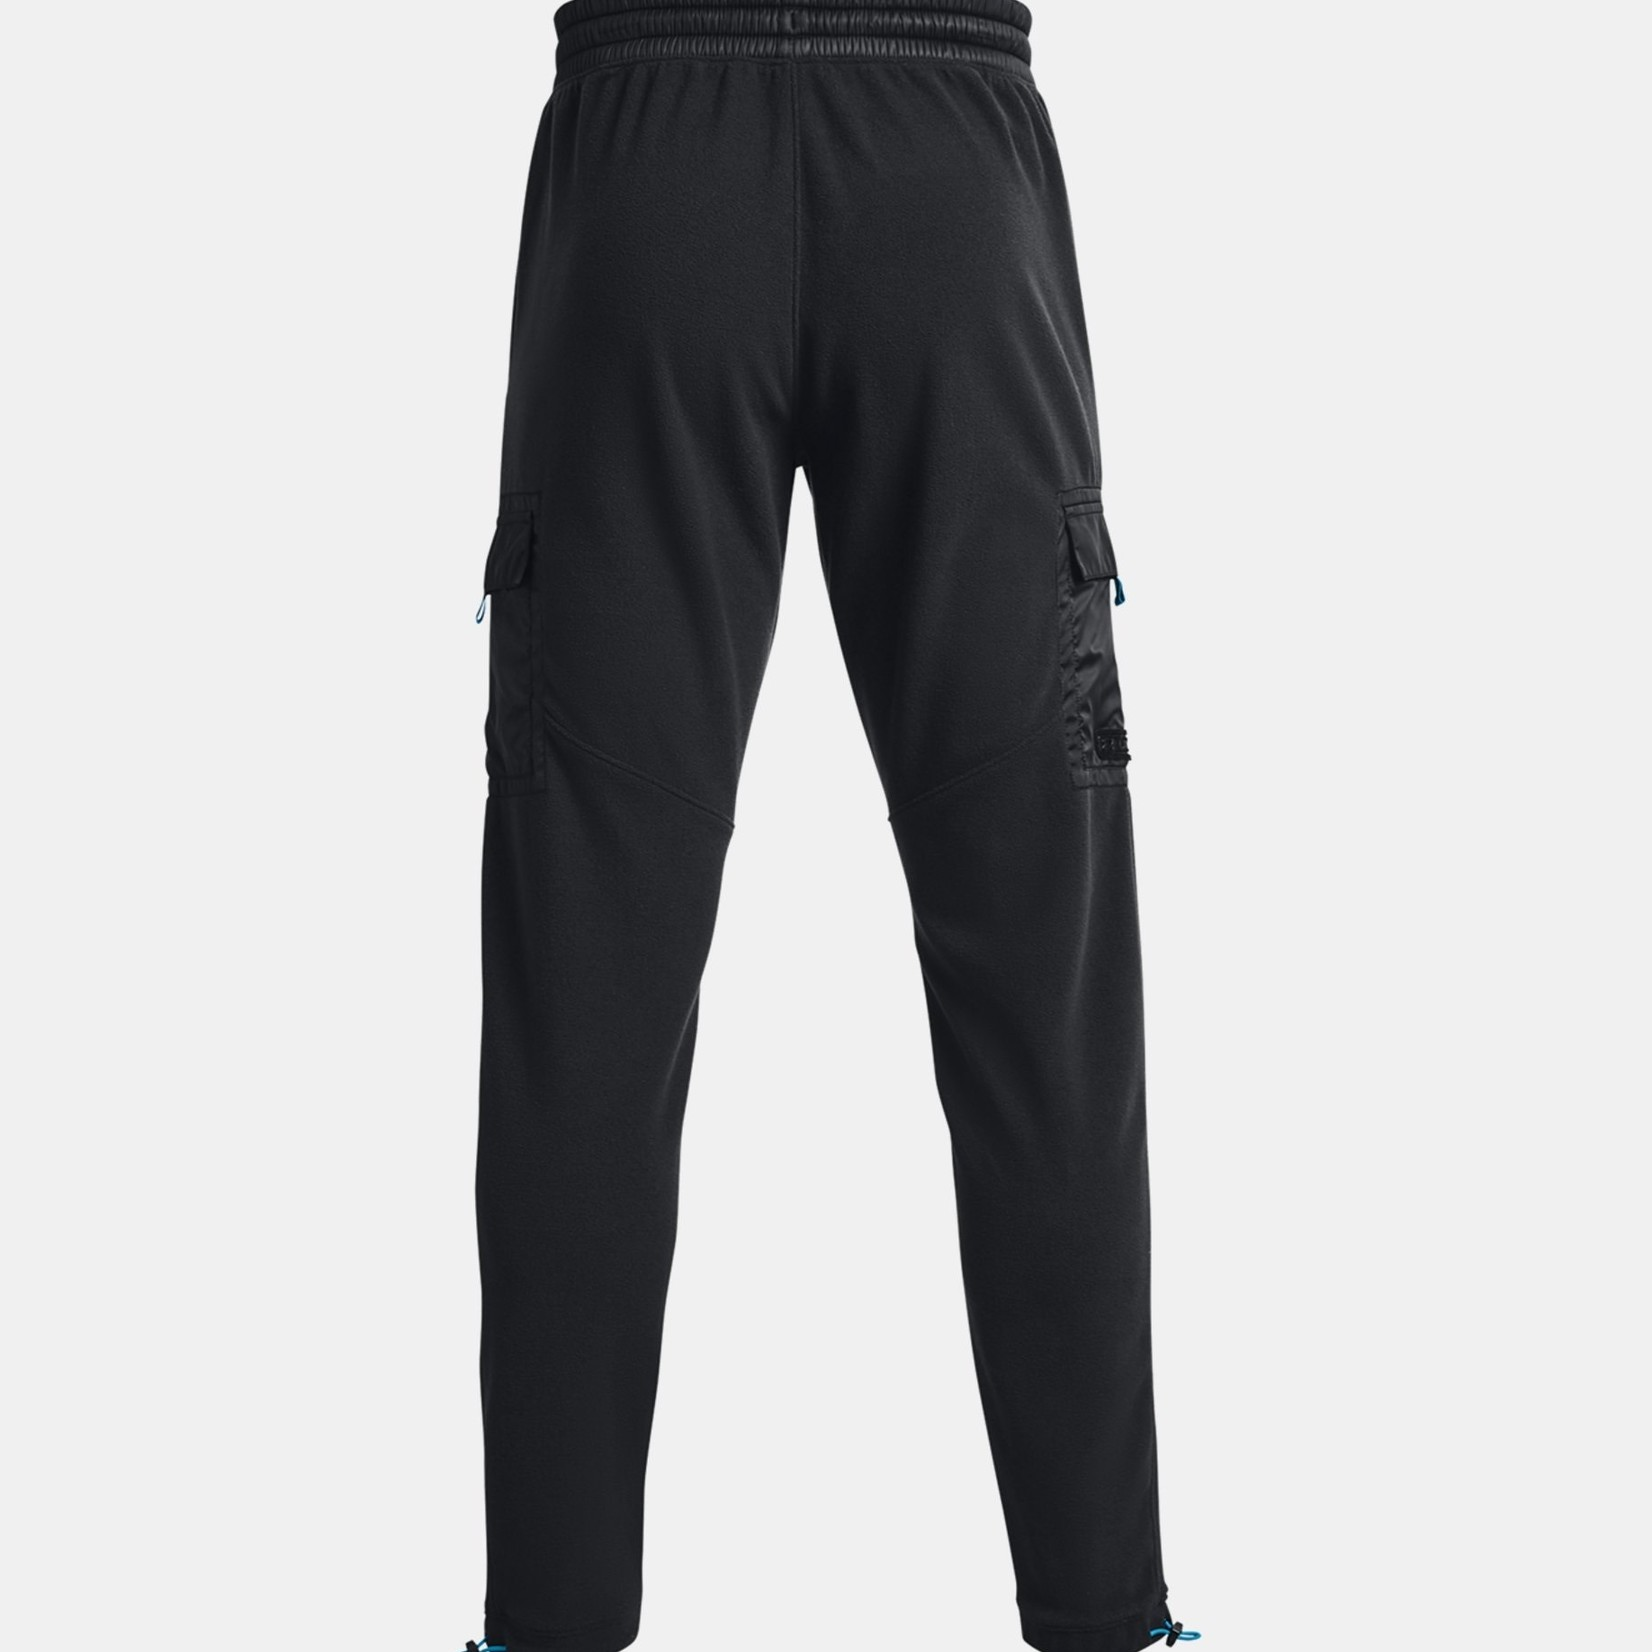 Under Armour ColdGear® Infrared Utility Cargo Pants - Black